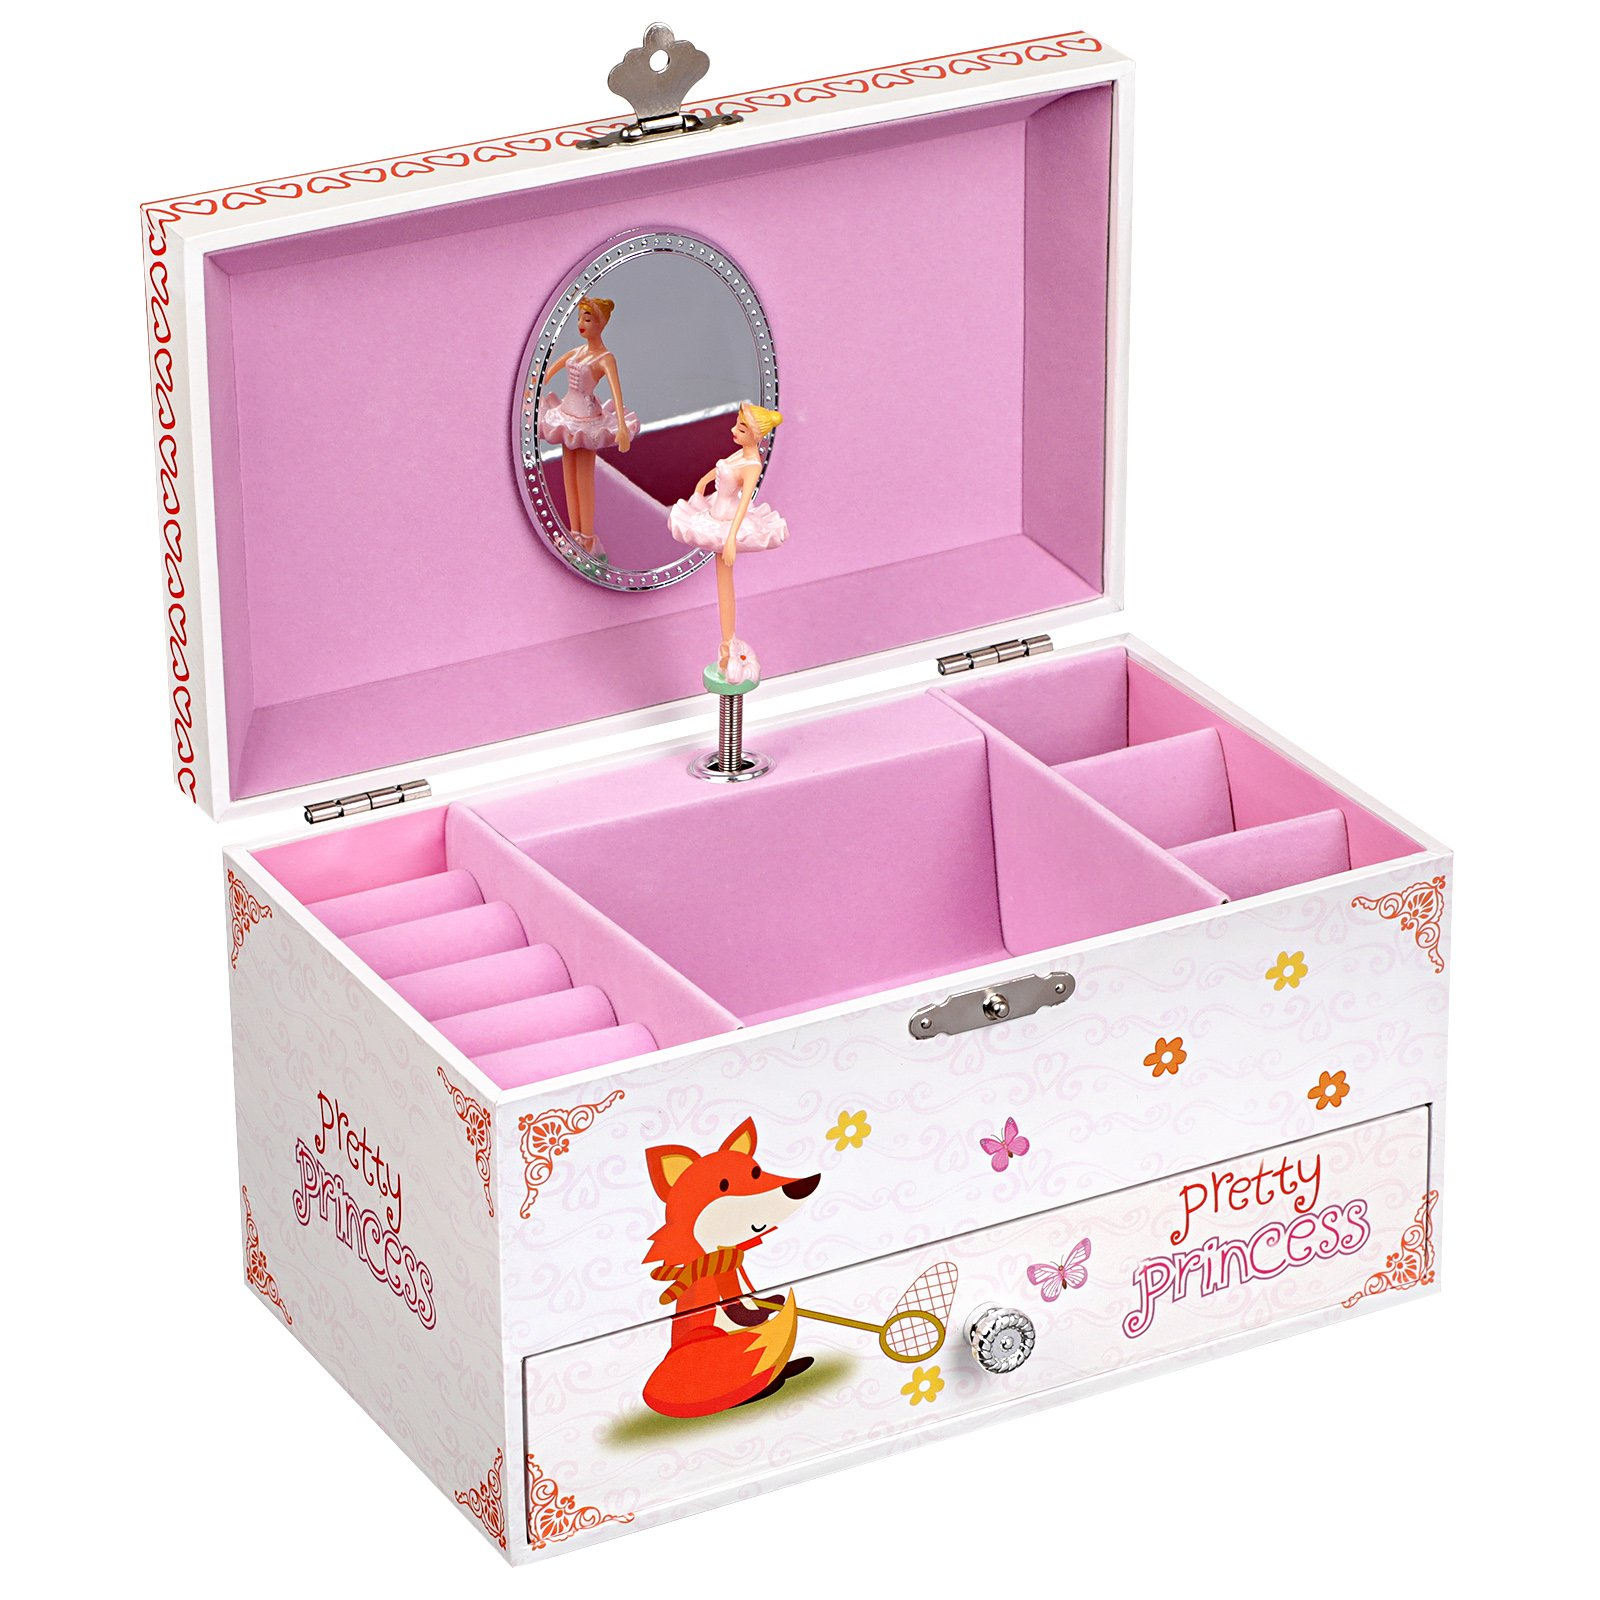 SONGMICS Ballerina Music Jewelry Box for Little Girls, Musical Box with Drawer, Dancing Princess, White UJMC010WT